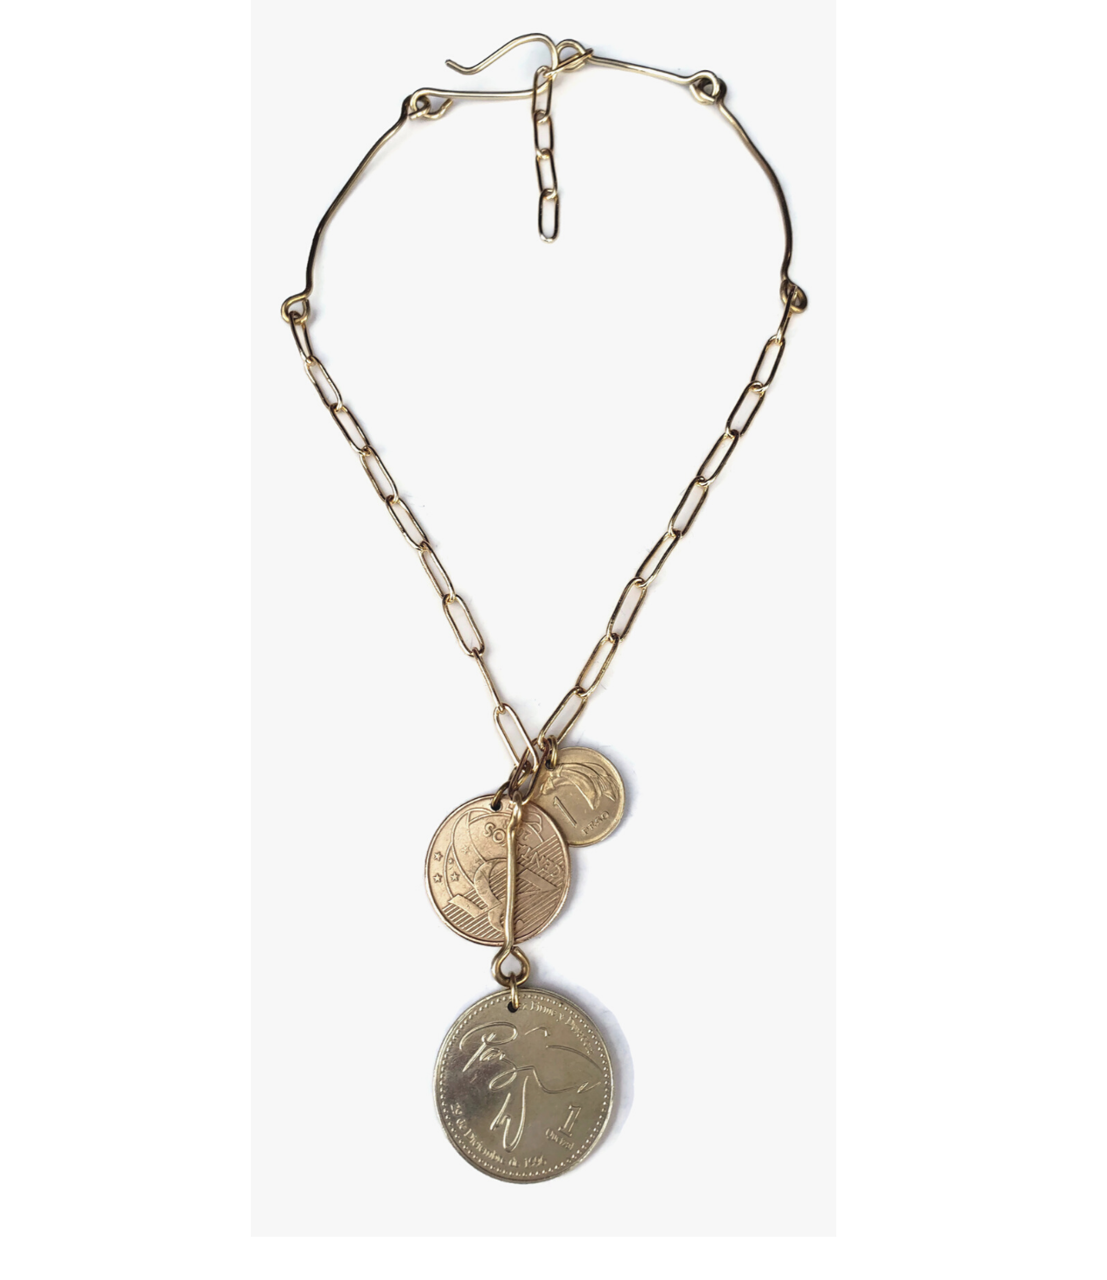 triple coins with brass chain & bar necklace on white background